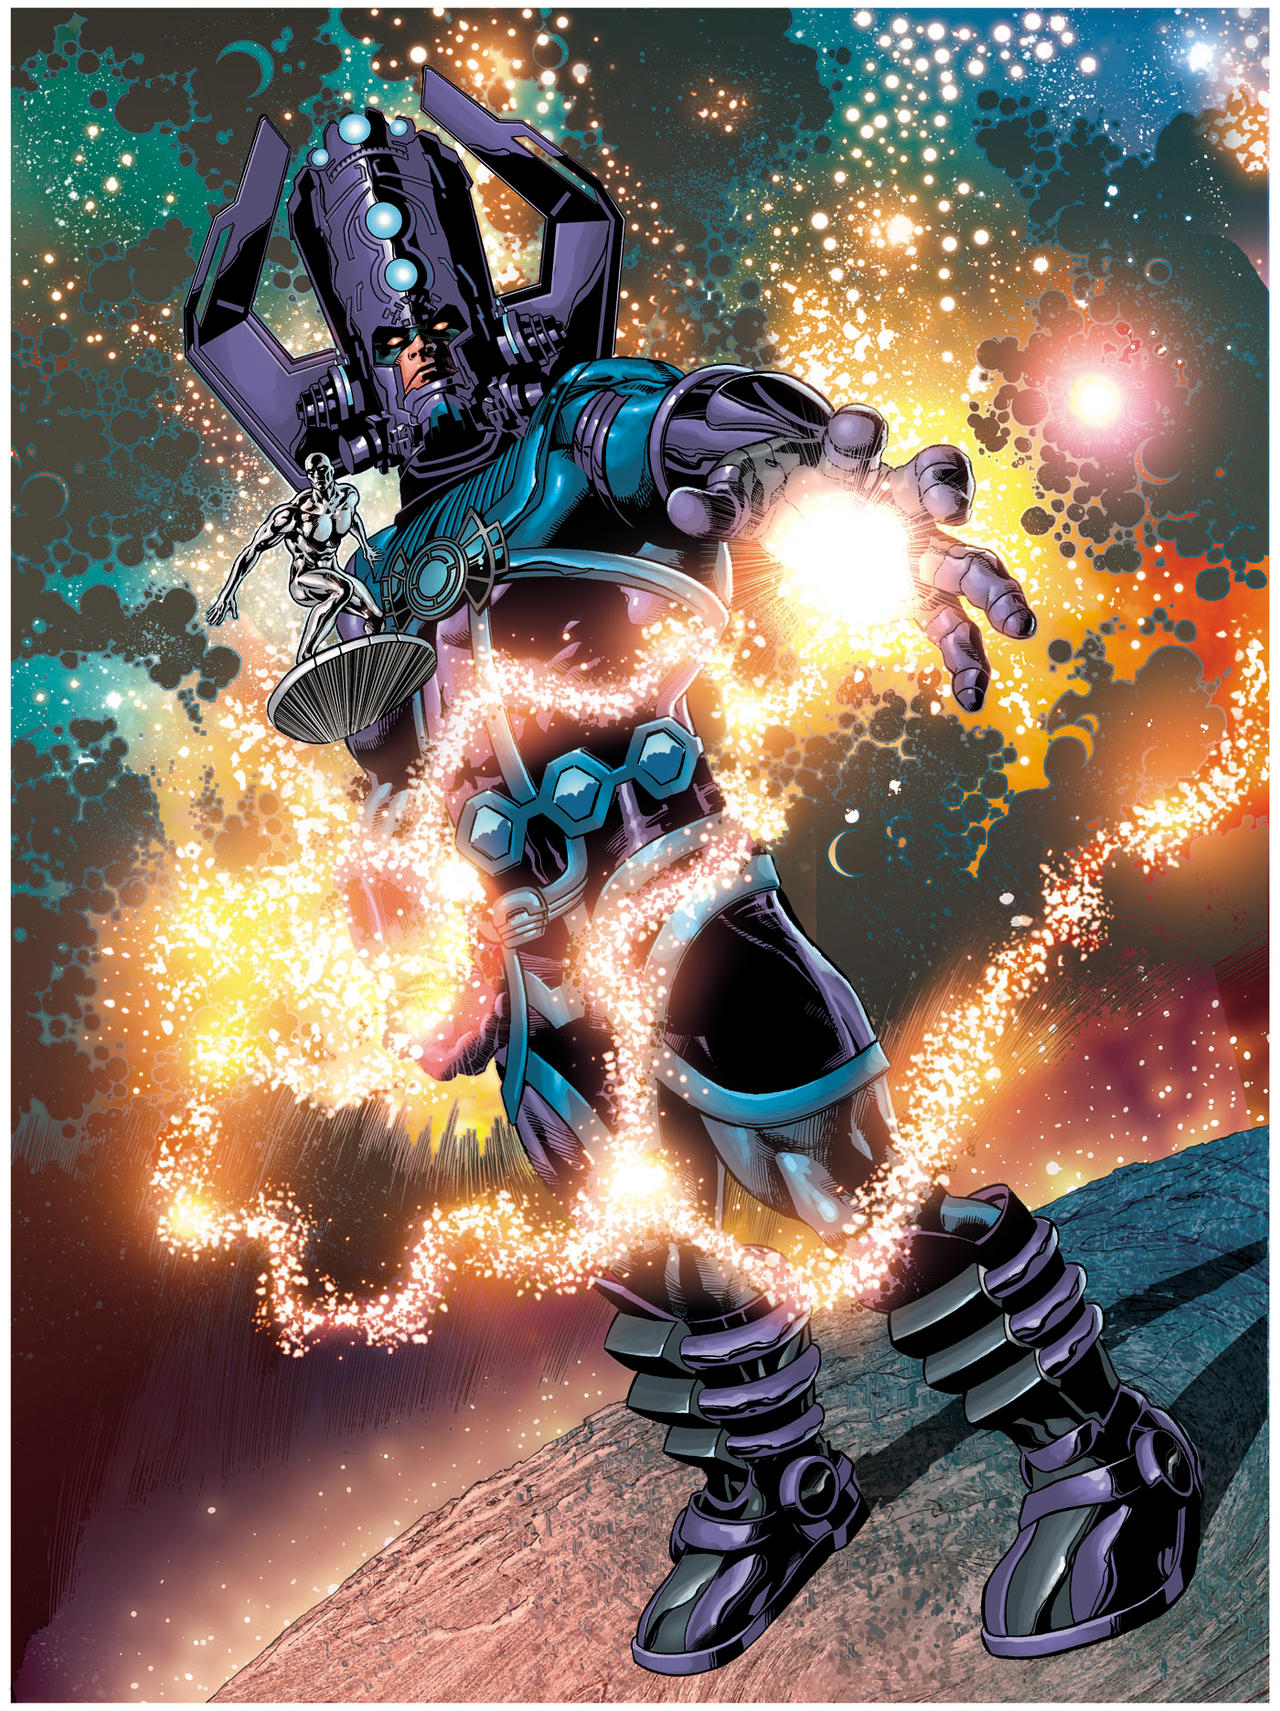 Galactus Unleashed Poster by Bosslogix on DeviantArt